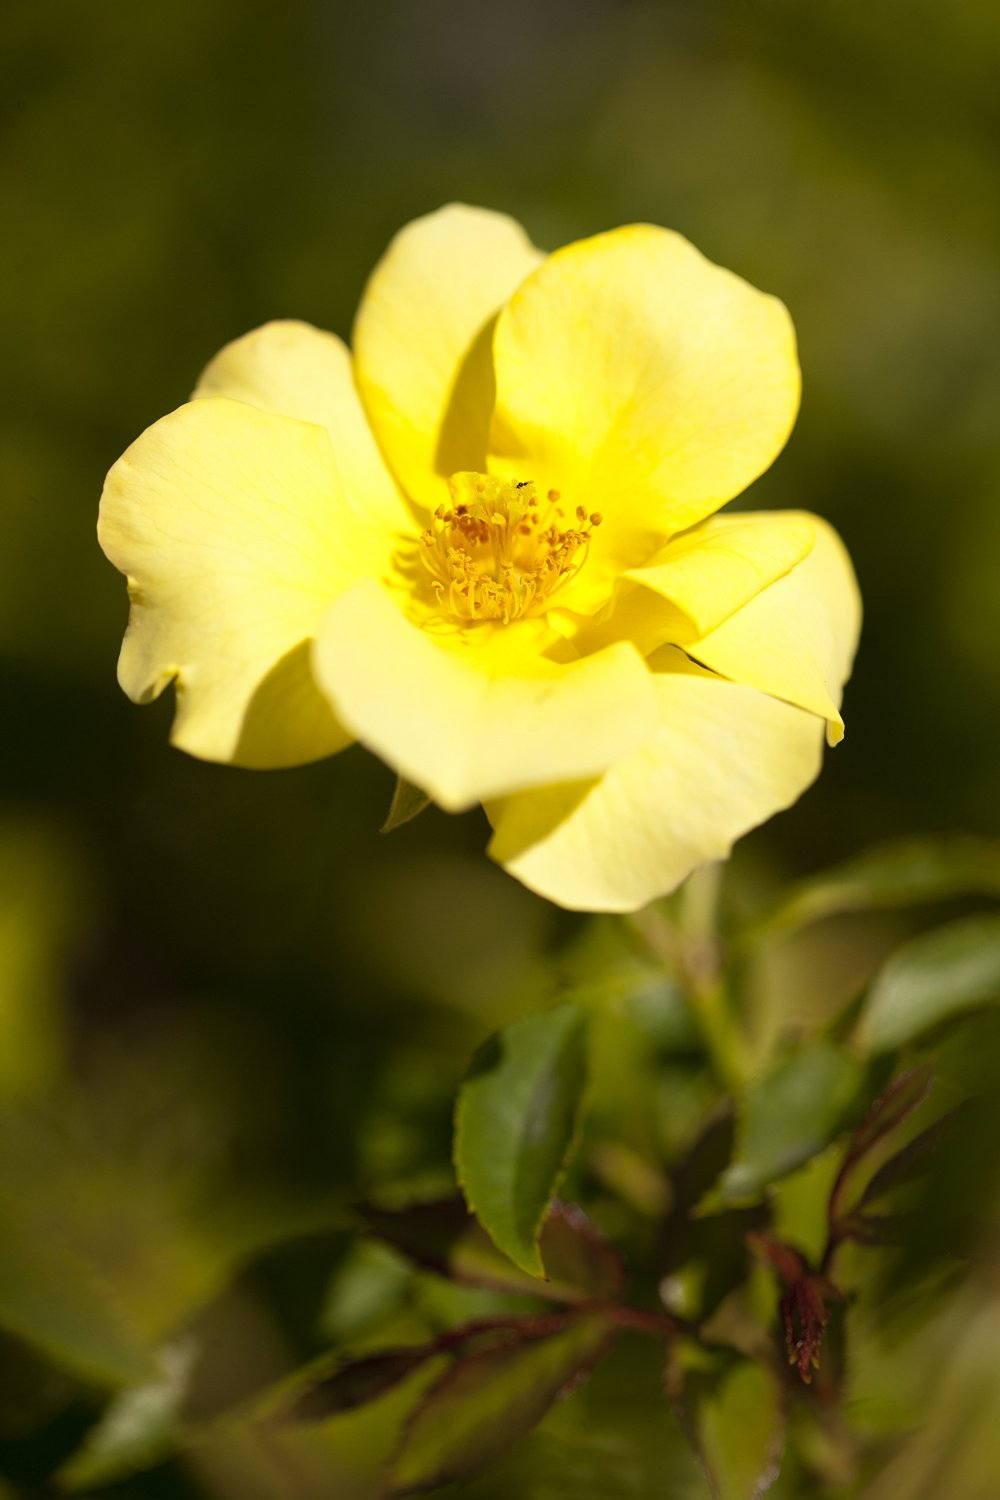 (1 Gallon) THRIVE LEMON ROSE, fragrant, beautiful yellow flowers, . The buds and flowers are yellow when they open and then gradually fade to white